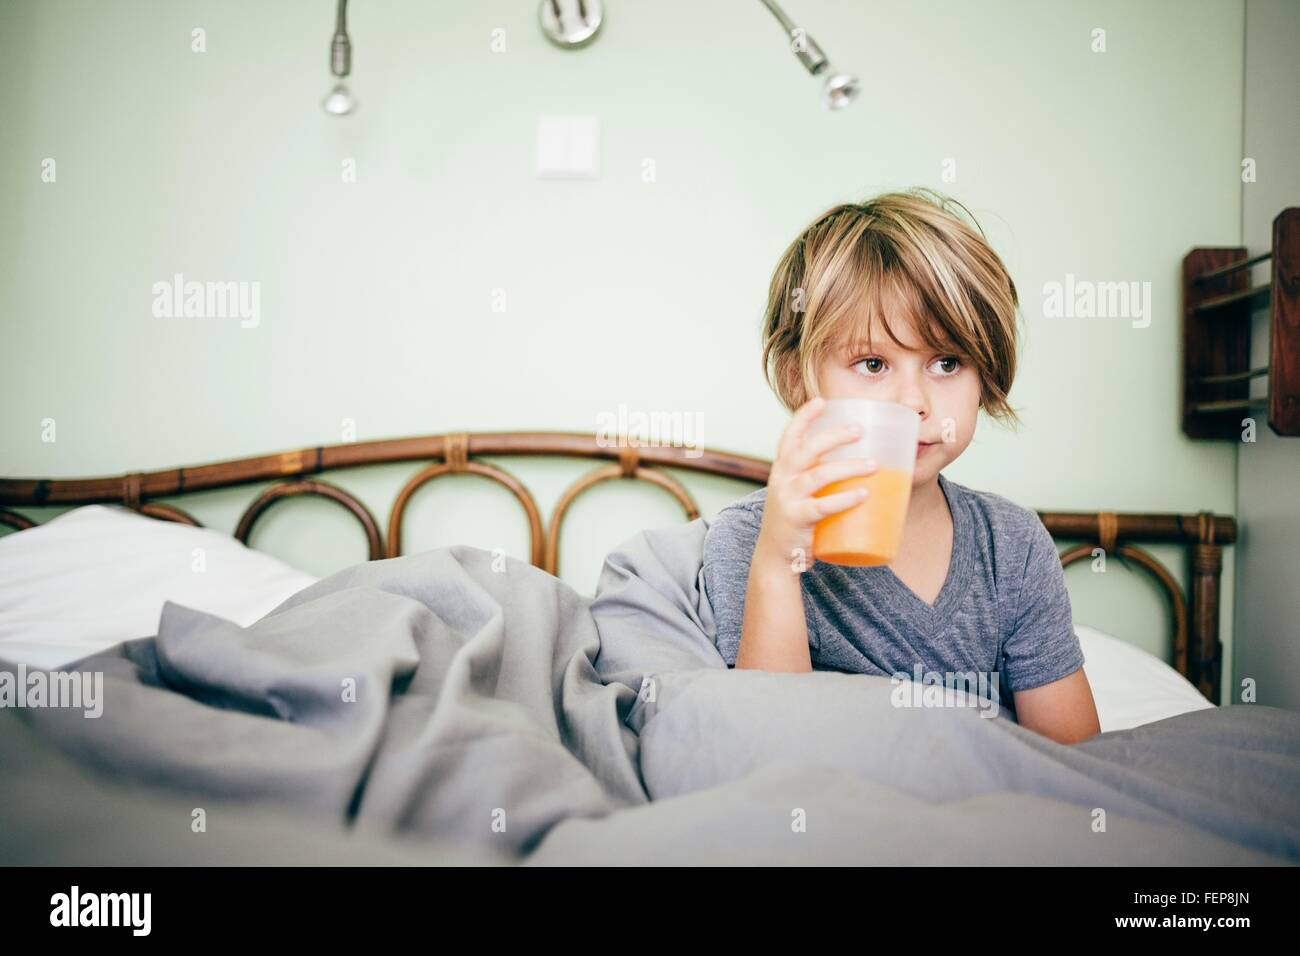 Boy sitting in bed drinking beaker of orange juice, looking away, Bludenz, Vorarlberg, Austria - Stock Image